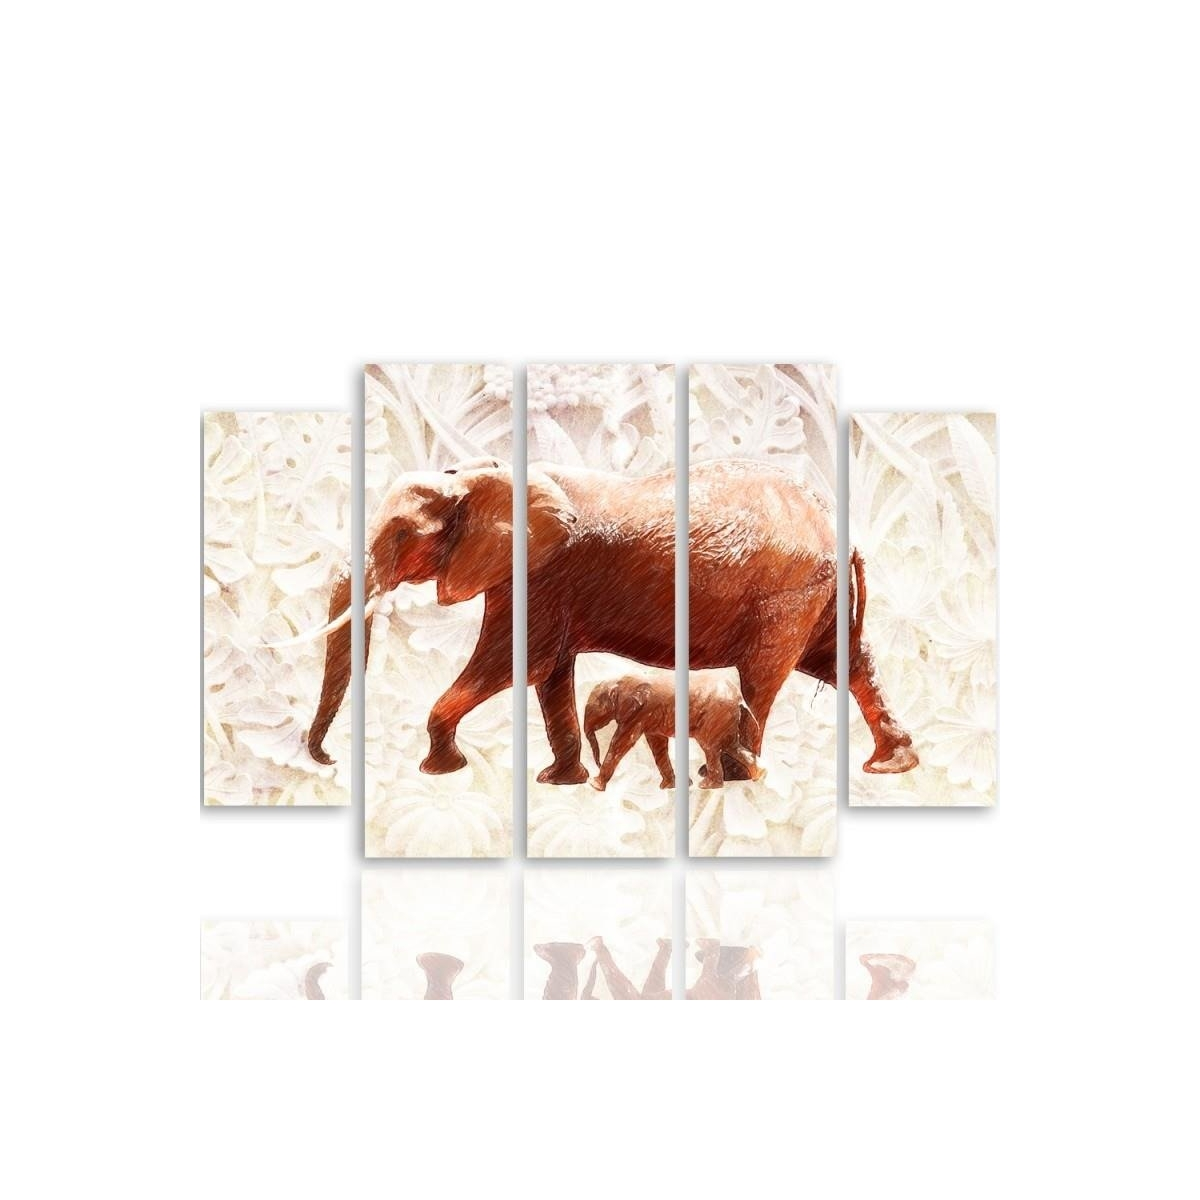 Five Part Picture On Canvas, Pentaptych, Type B, The Elephant With Her Calf 100x150